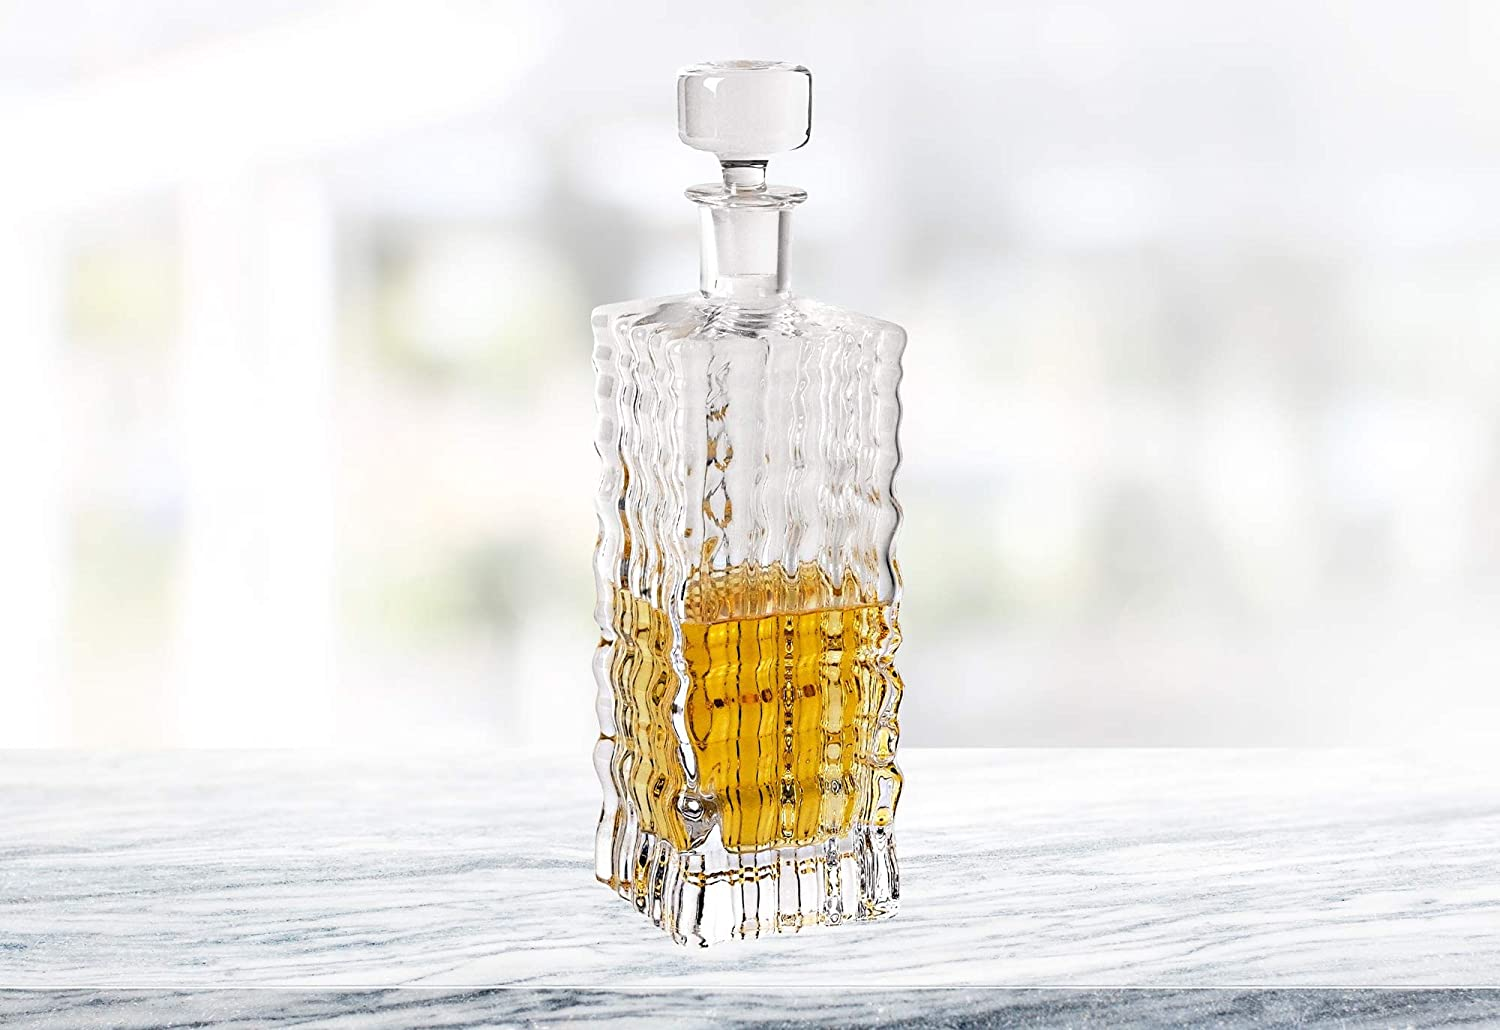 (D) Handcrafted 'Ripples' Lead Free Crystal Square Decanter or Carafe 28 Oz